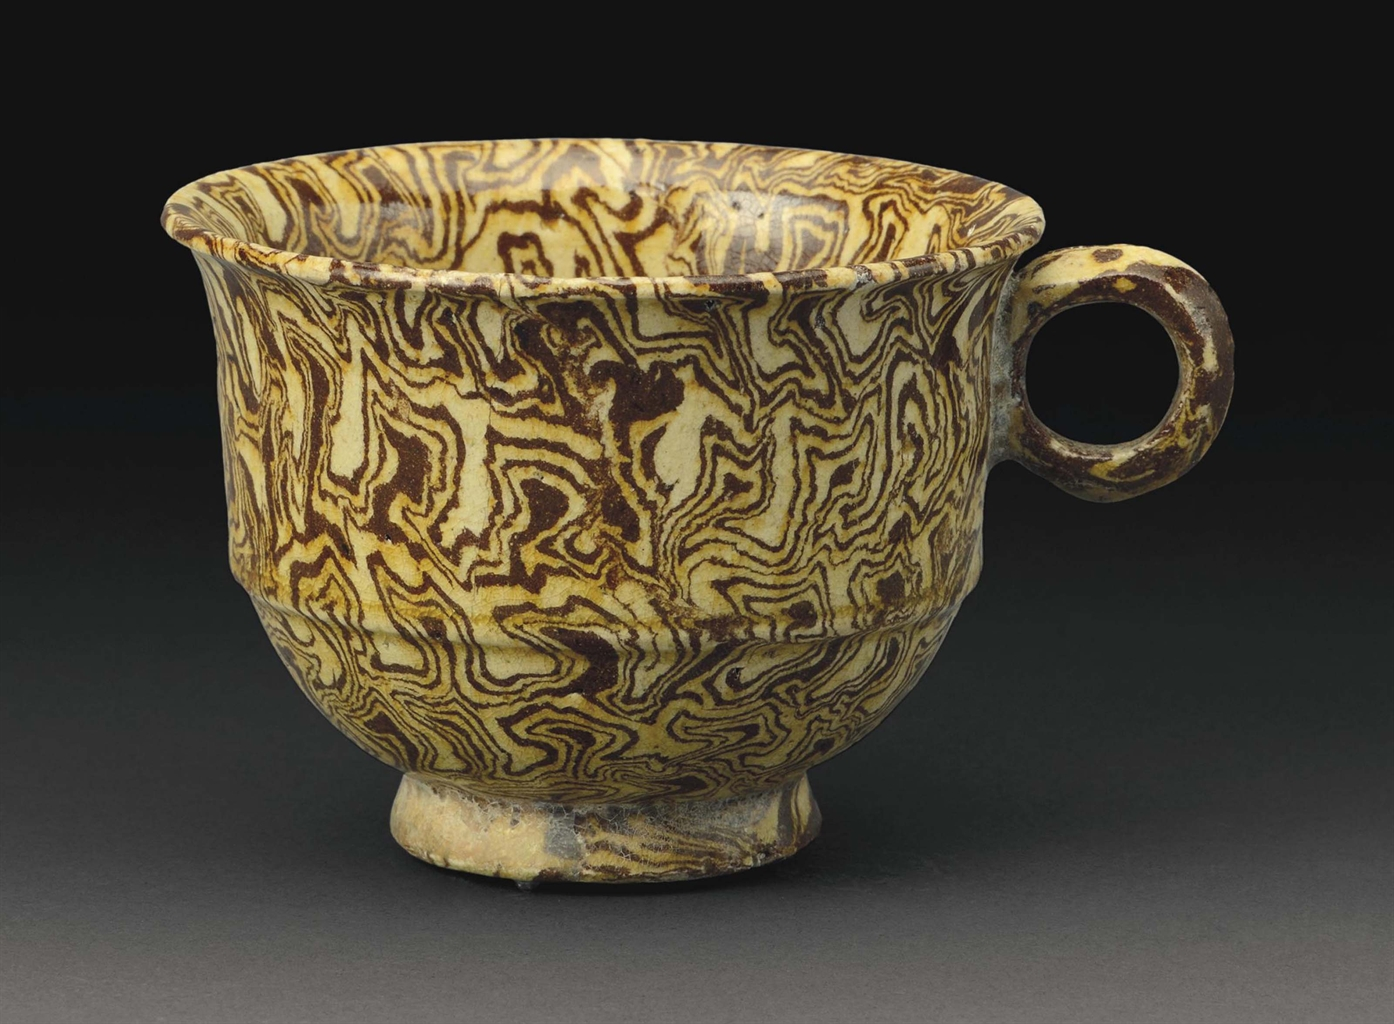 A RARE YELLOWGLAZED MARBLED POTTERY CUP  TANG DYNASTY AD 618907  CHINESE CERAMICS AND